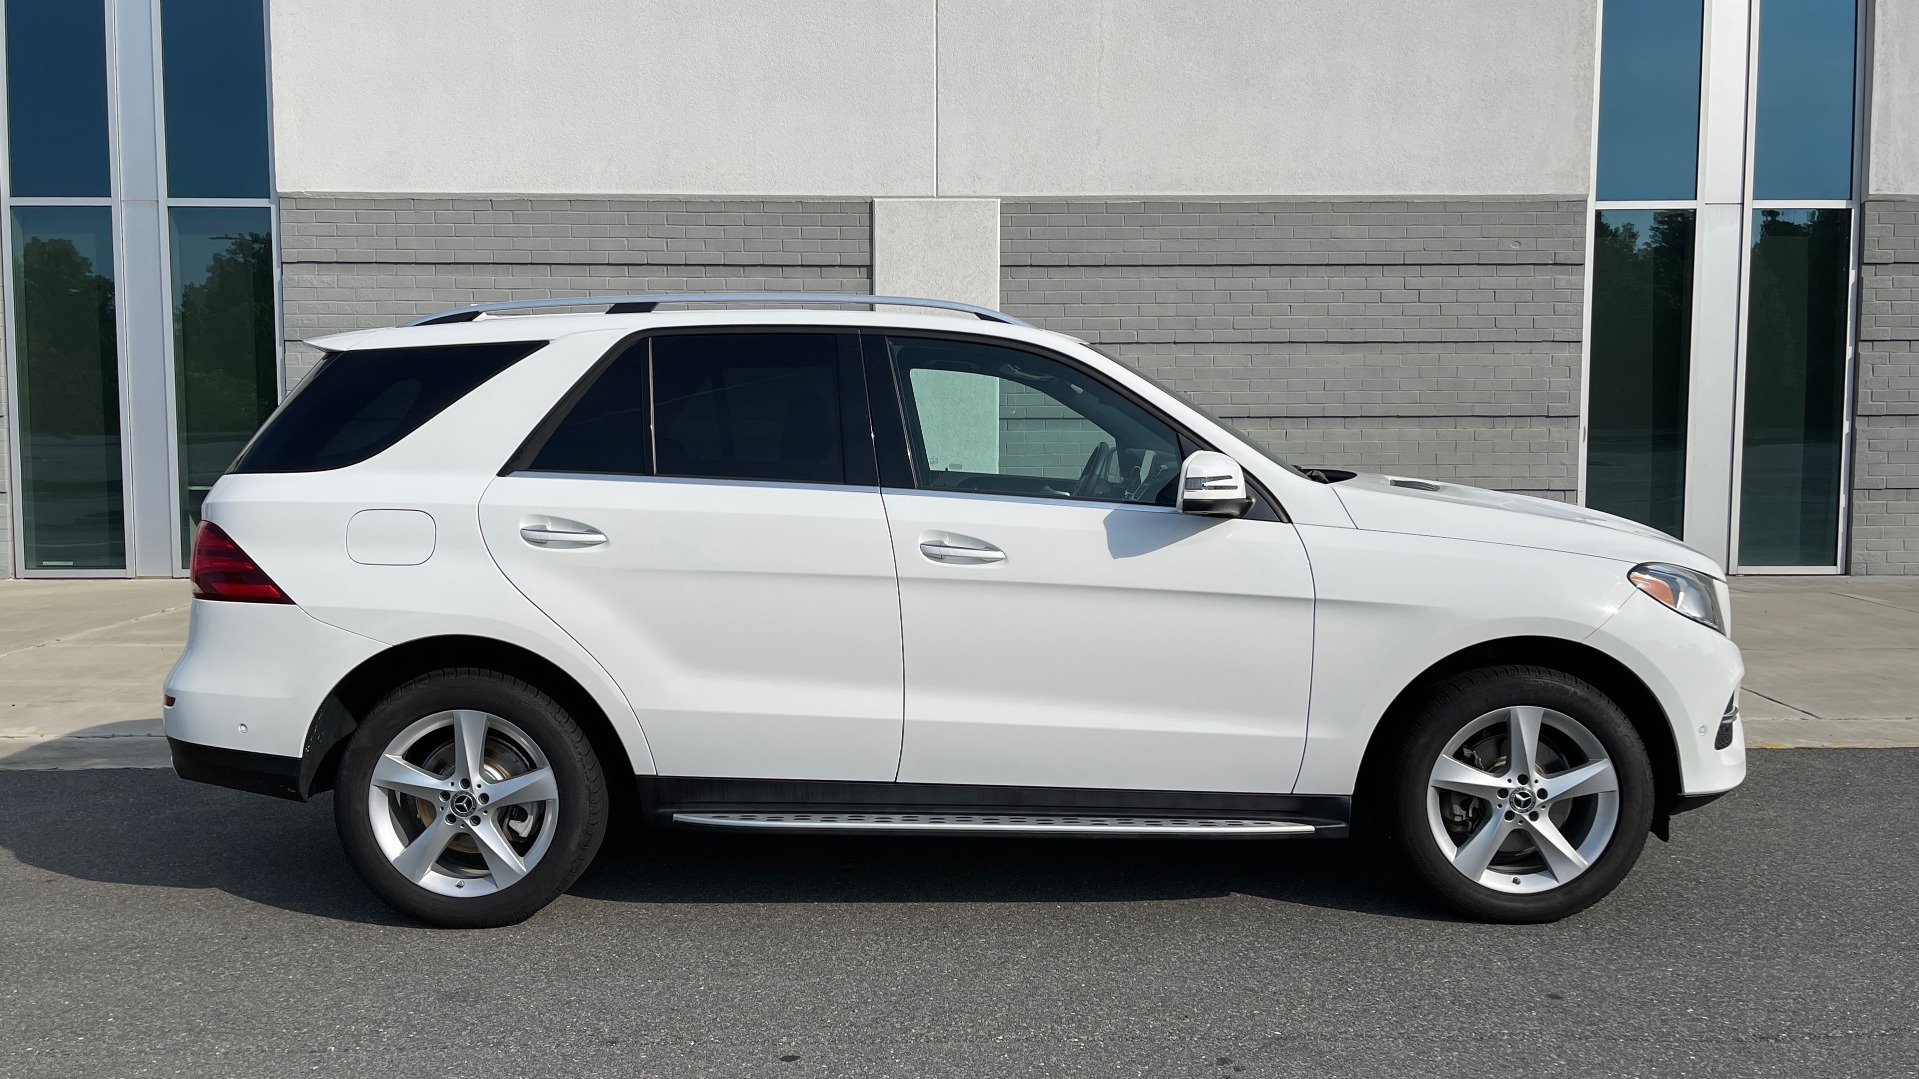 Used 2018 Mercedes-Benz GLE 350 4MATIC PREMIUM / NAV / SUNROOF / HTD STS / TRAILER HITCH / REARVIEW for sale $36,295 at Formula Imports in Charlotte NC 28227 7